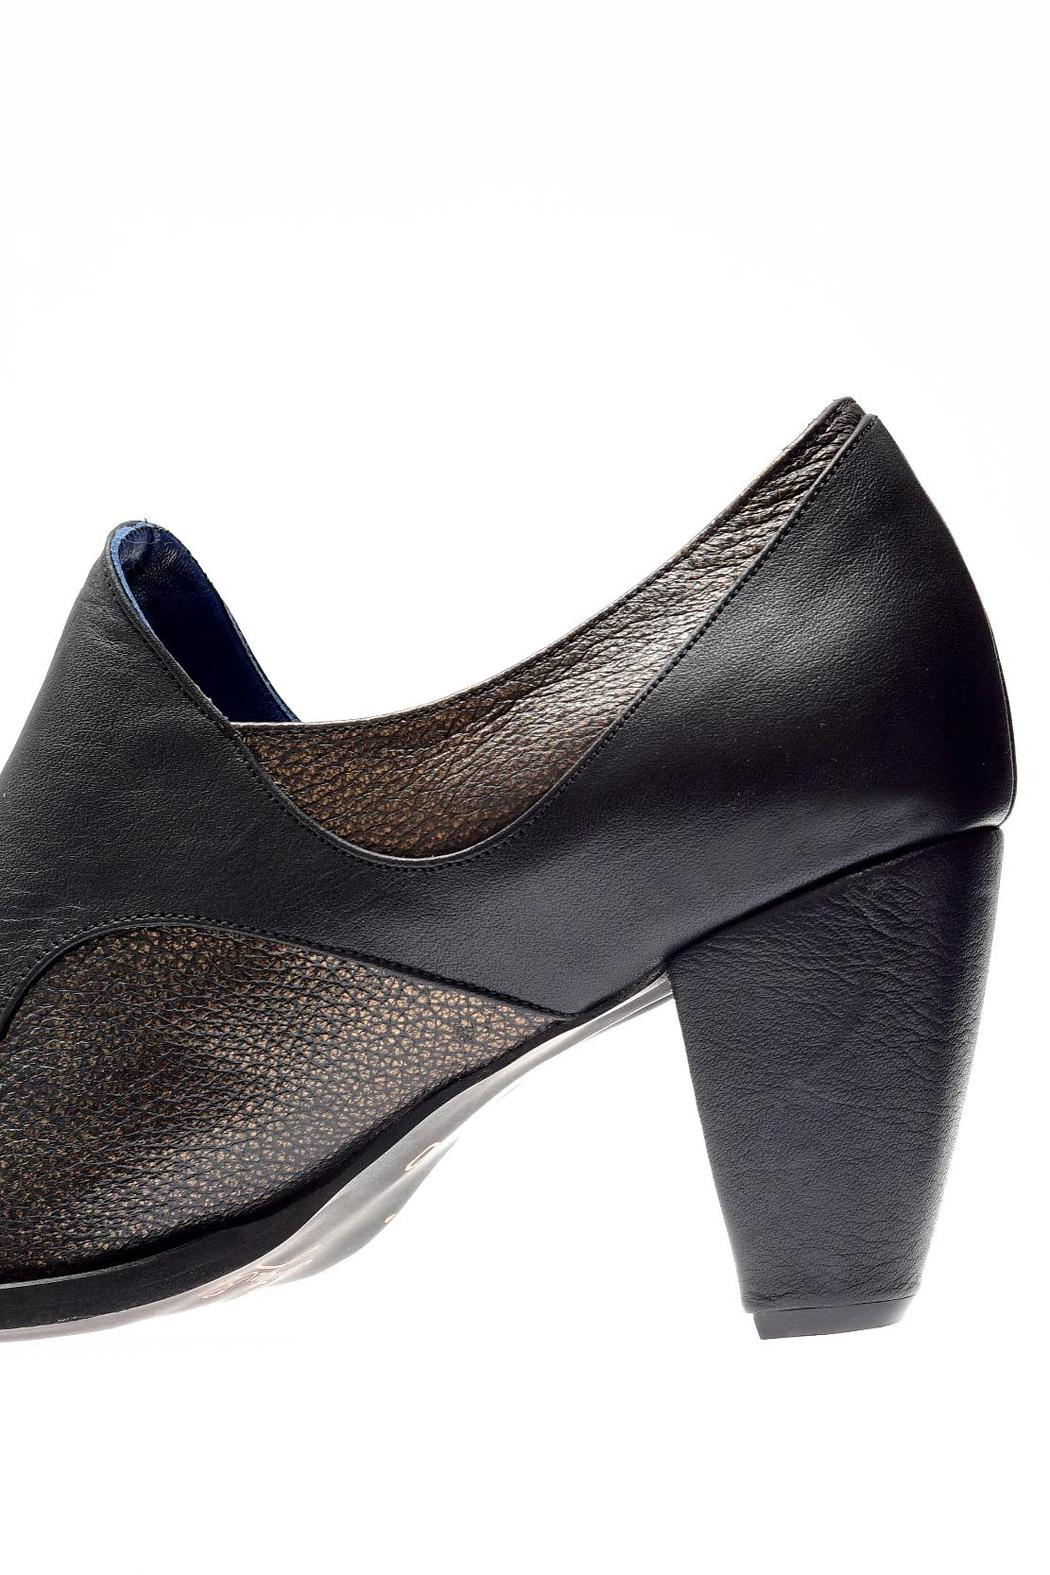 Bottega Bash Black Heels - Back Cropped Image